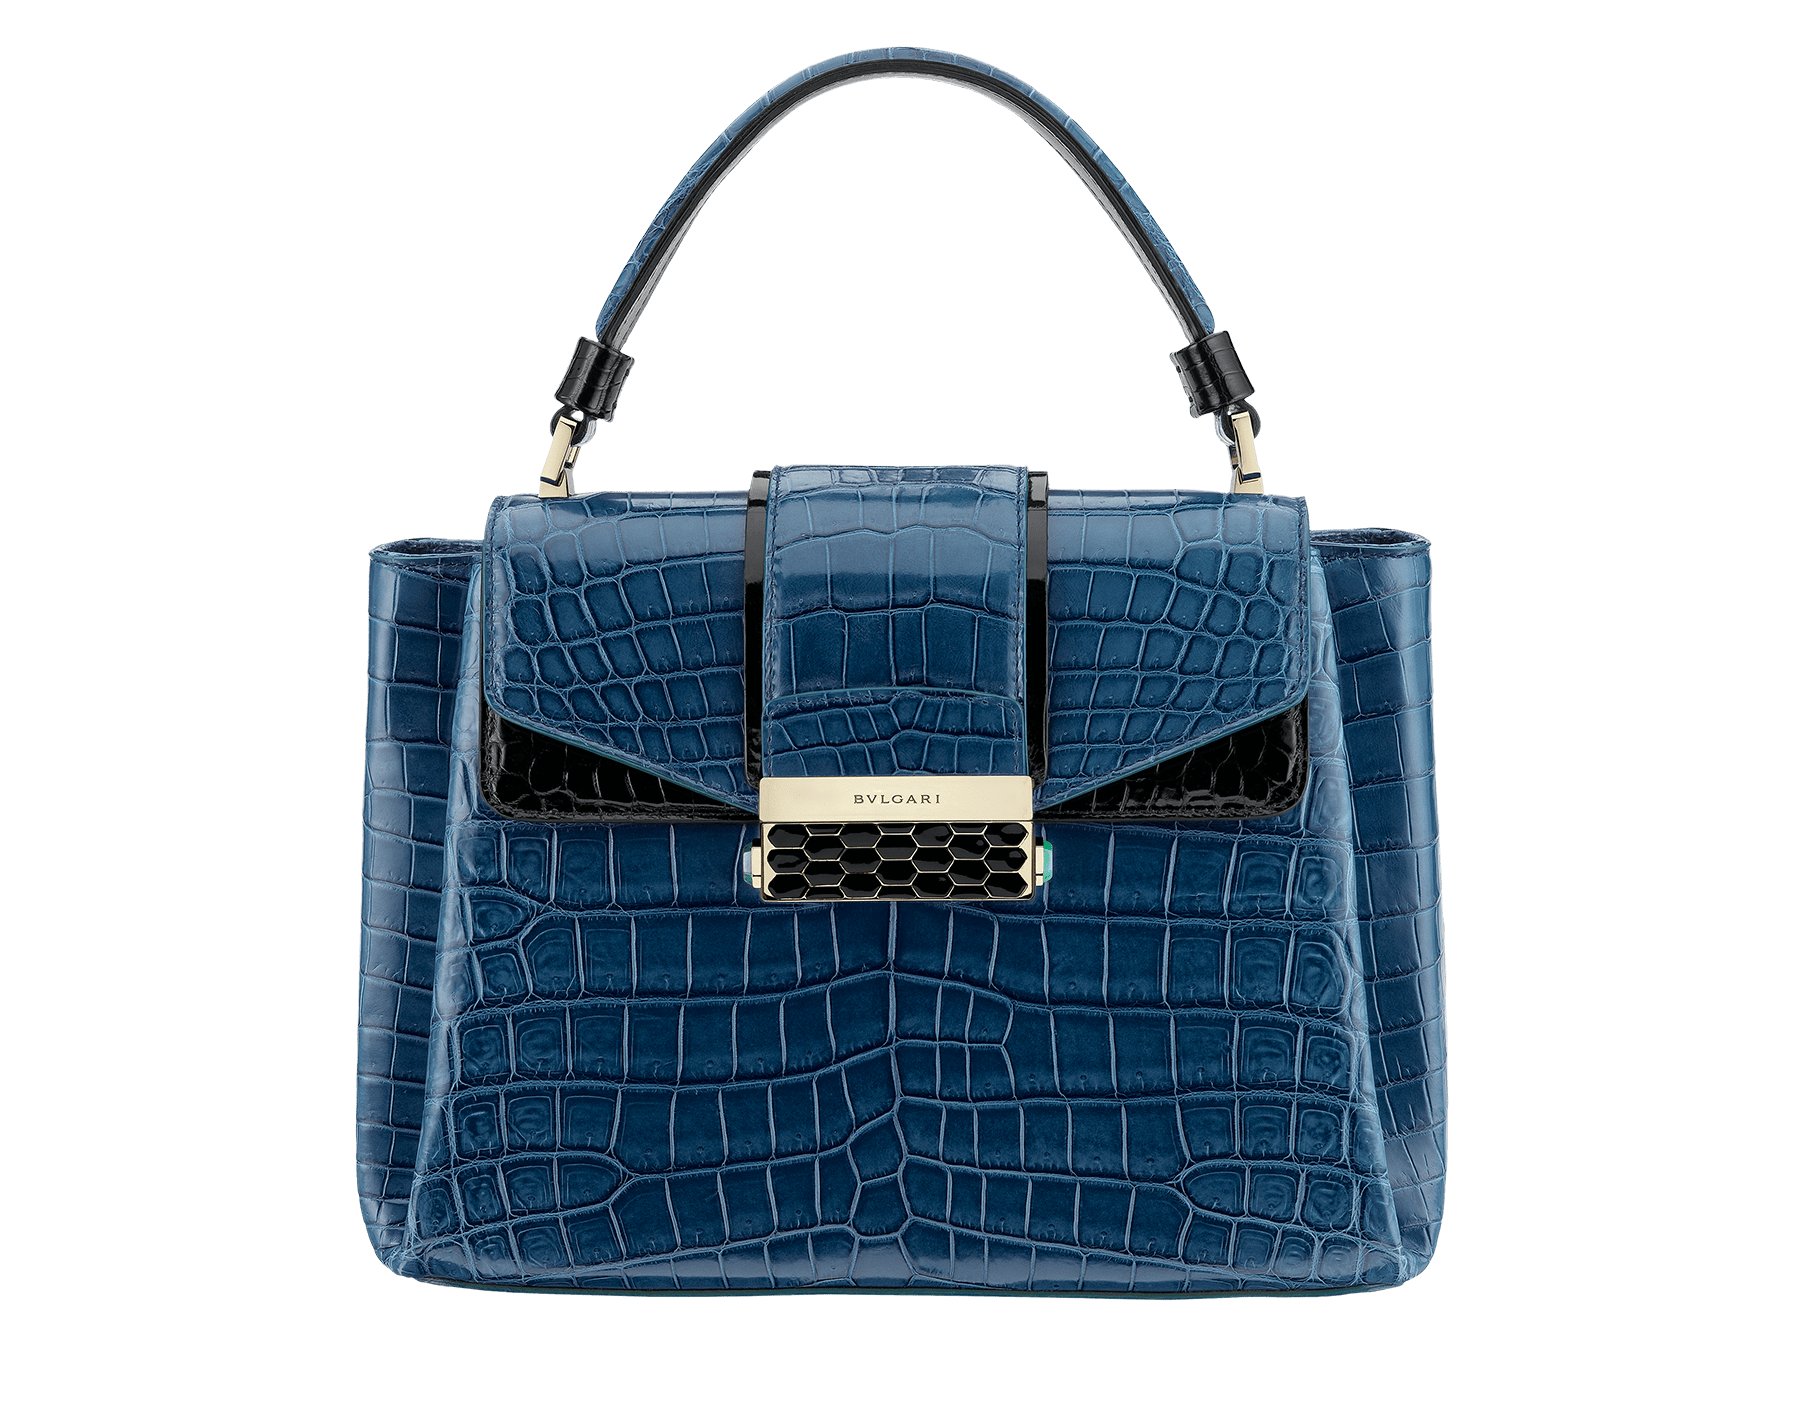 Top handle bag Serpenti Viper in topazio and black shiny crocodile skin. Brass light gold plated hardware and snap closure in black shiny enamel with iconic Scaglie design. 284472 image 1